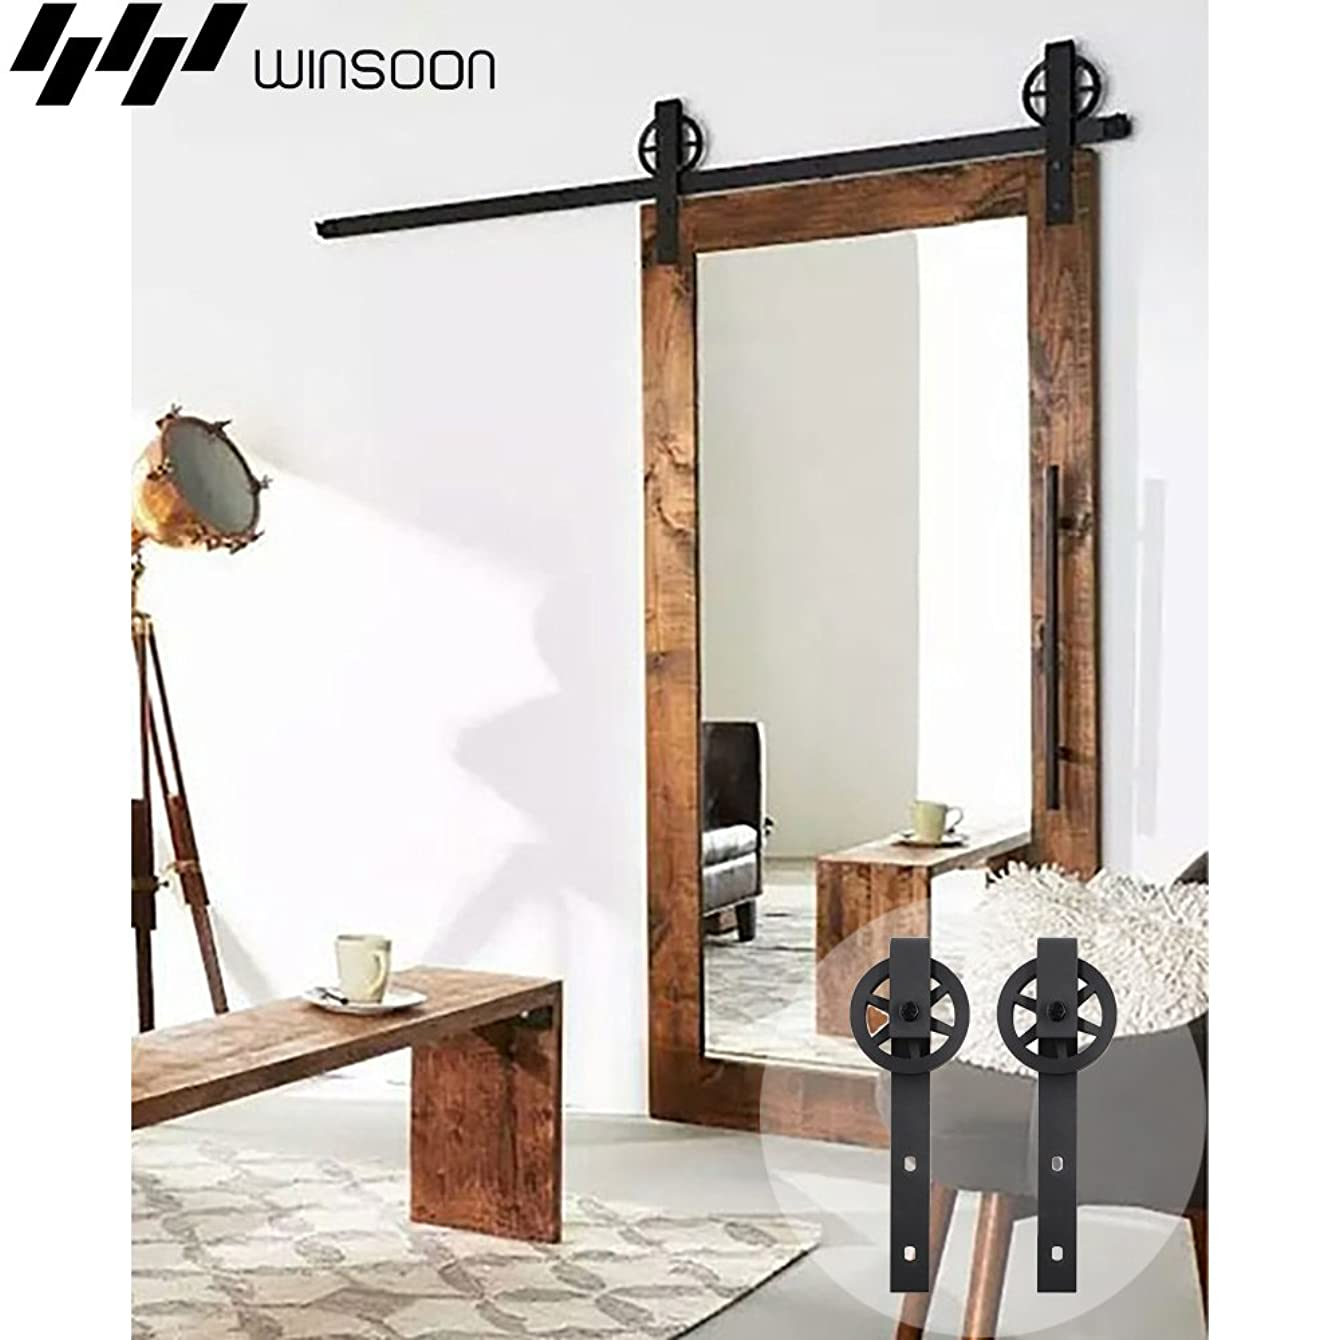 WINSOON Sliding Barn Door Hardware 17ft Track Single Door Kit Low Ceiling for Window Cabinet TV Stand, I Shape Hooks